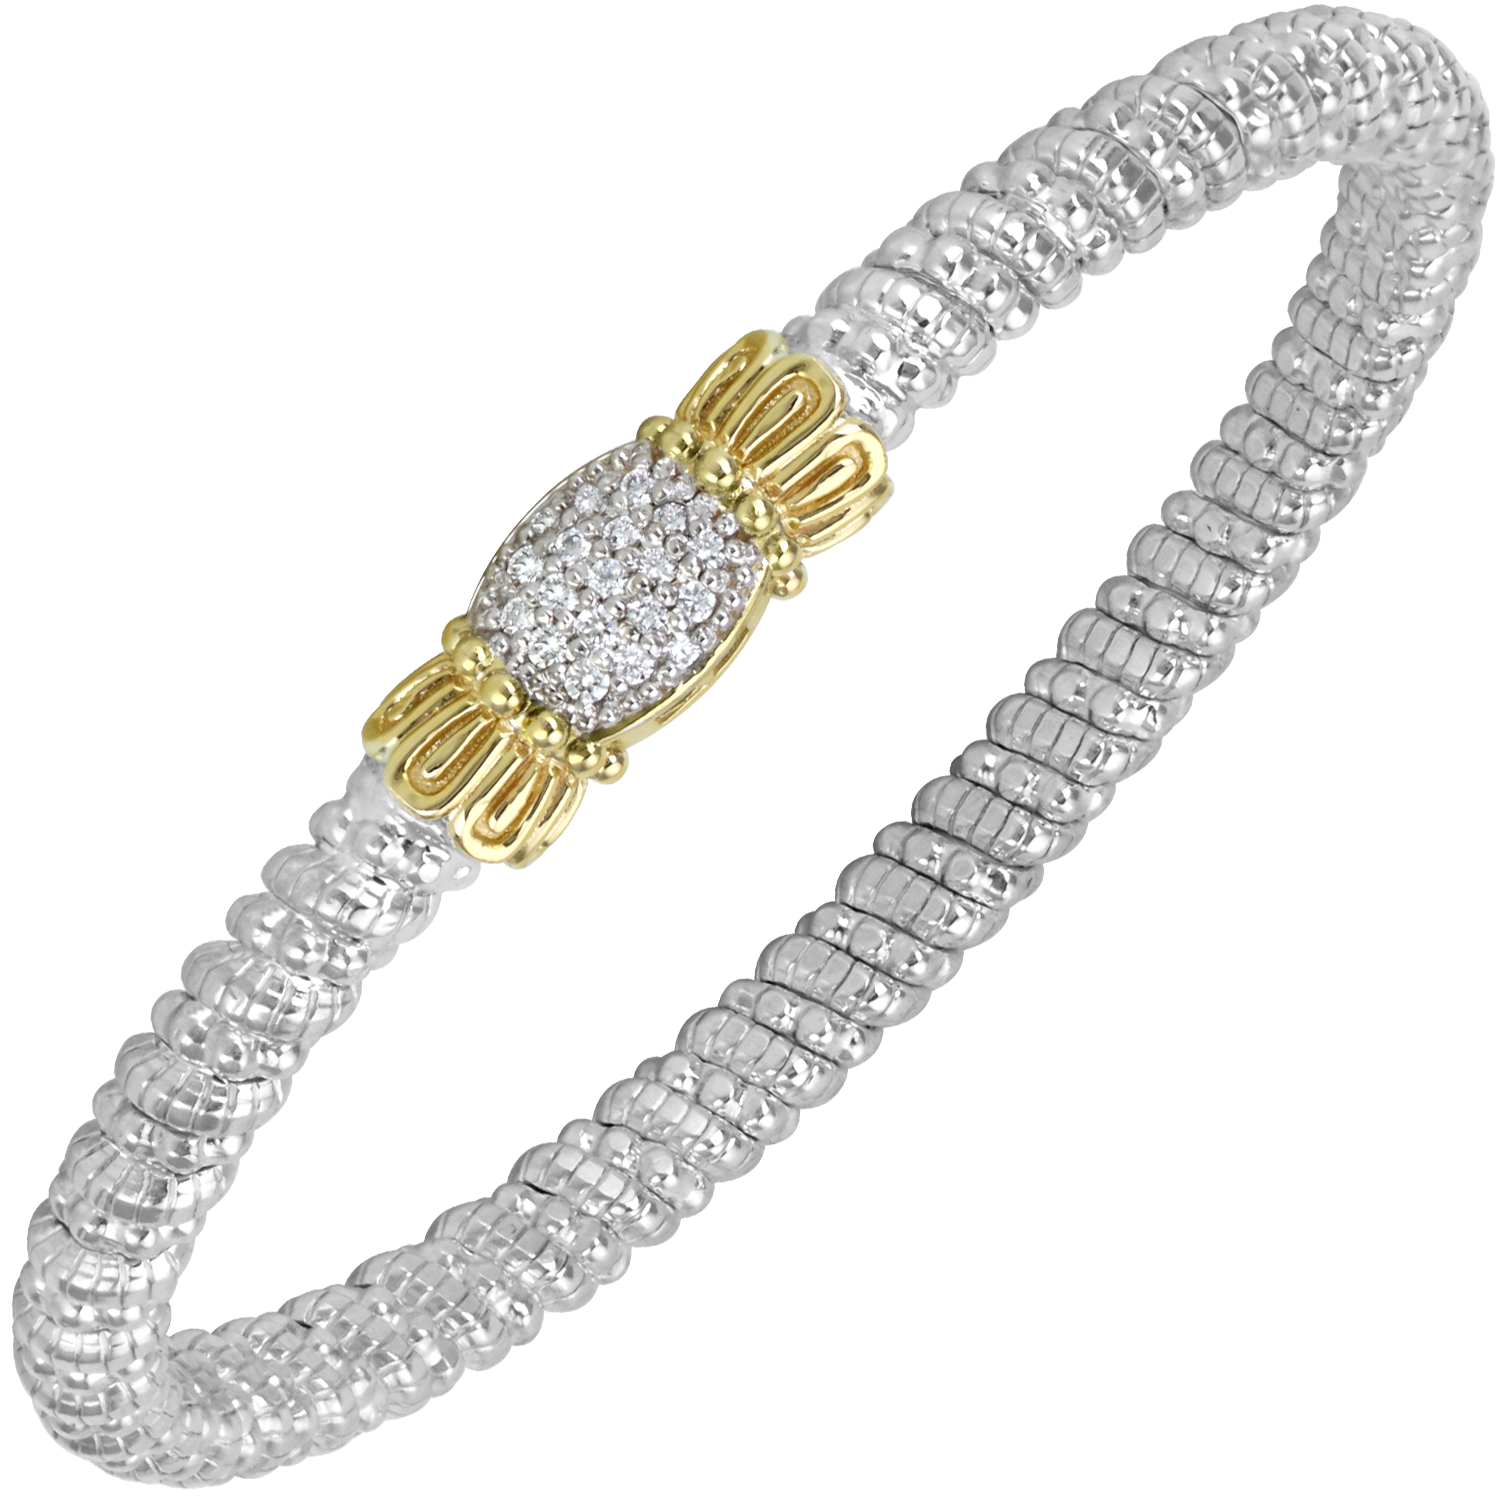 Multi-Pave Diamond Petite Bracelet by Vahan - Talisman Collection Fine Jewelers